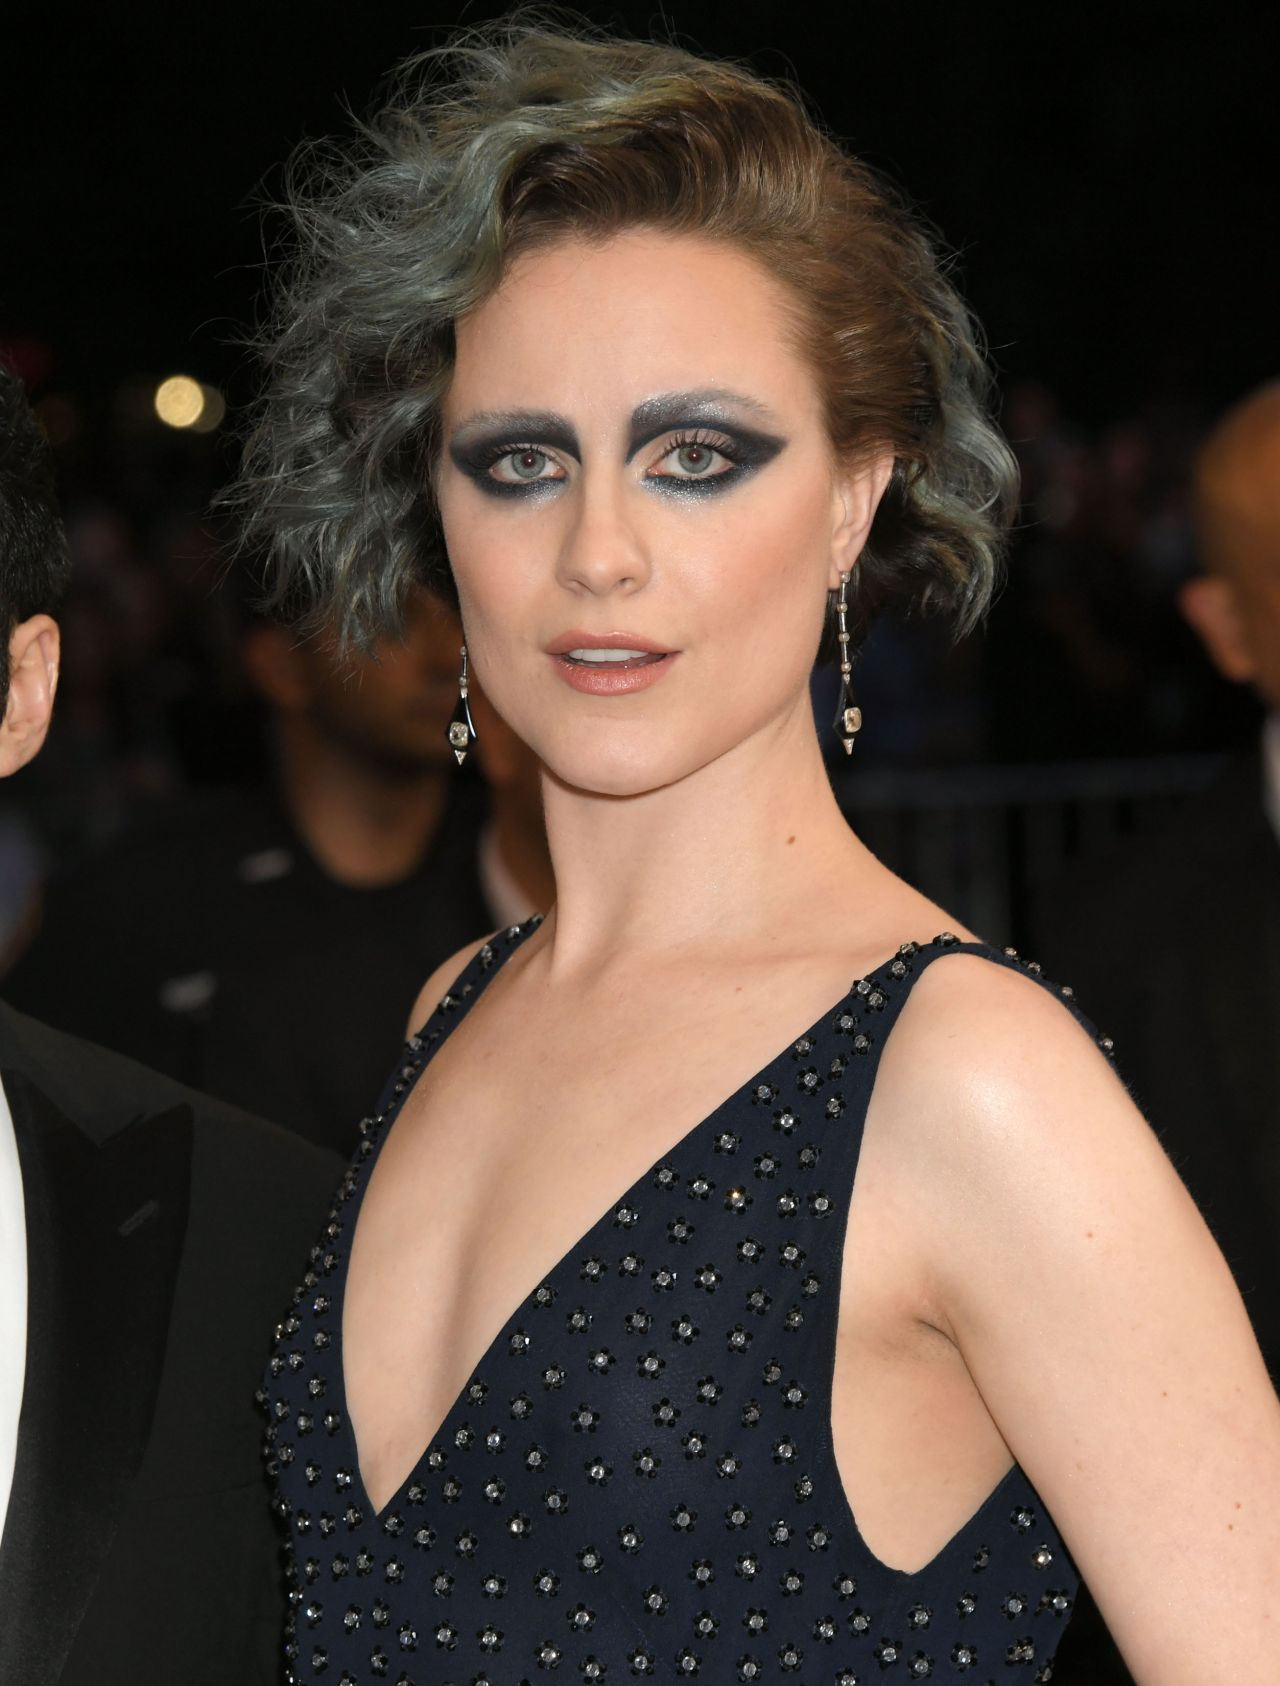 Evan Rachel Wood at MET Gala in New York 05/01/2017 Evan Rachel Wood